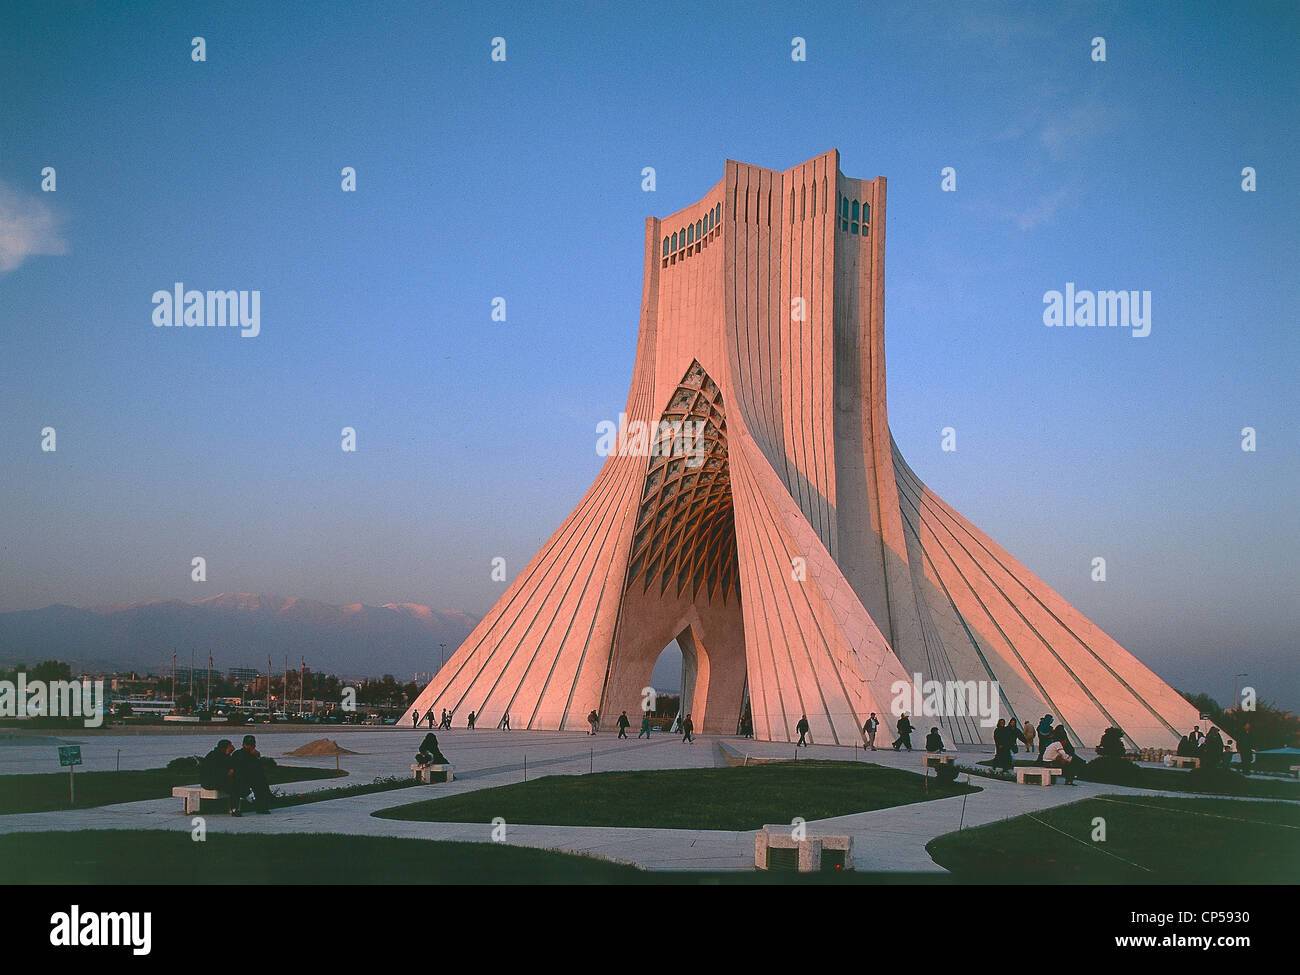 Iran - Tehran - Azadi Tower (Shahyad) in Azadi Square (architect ...